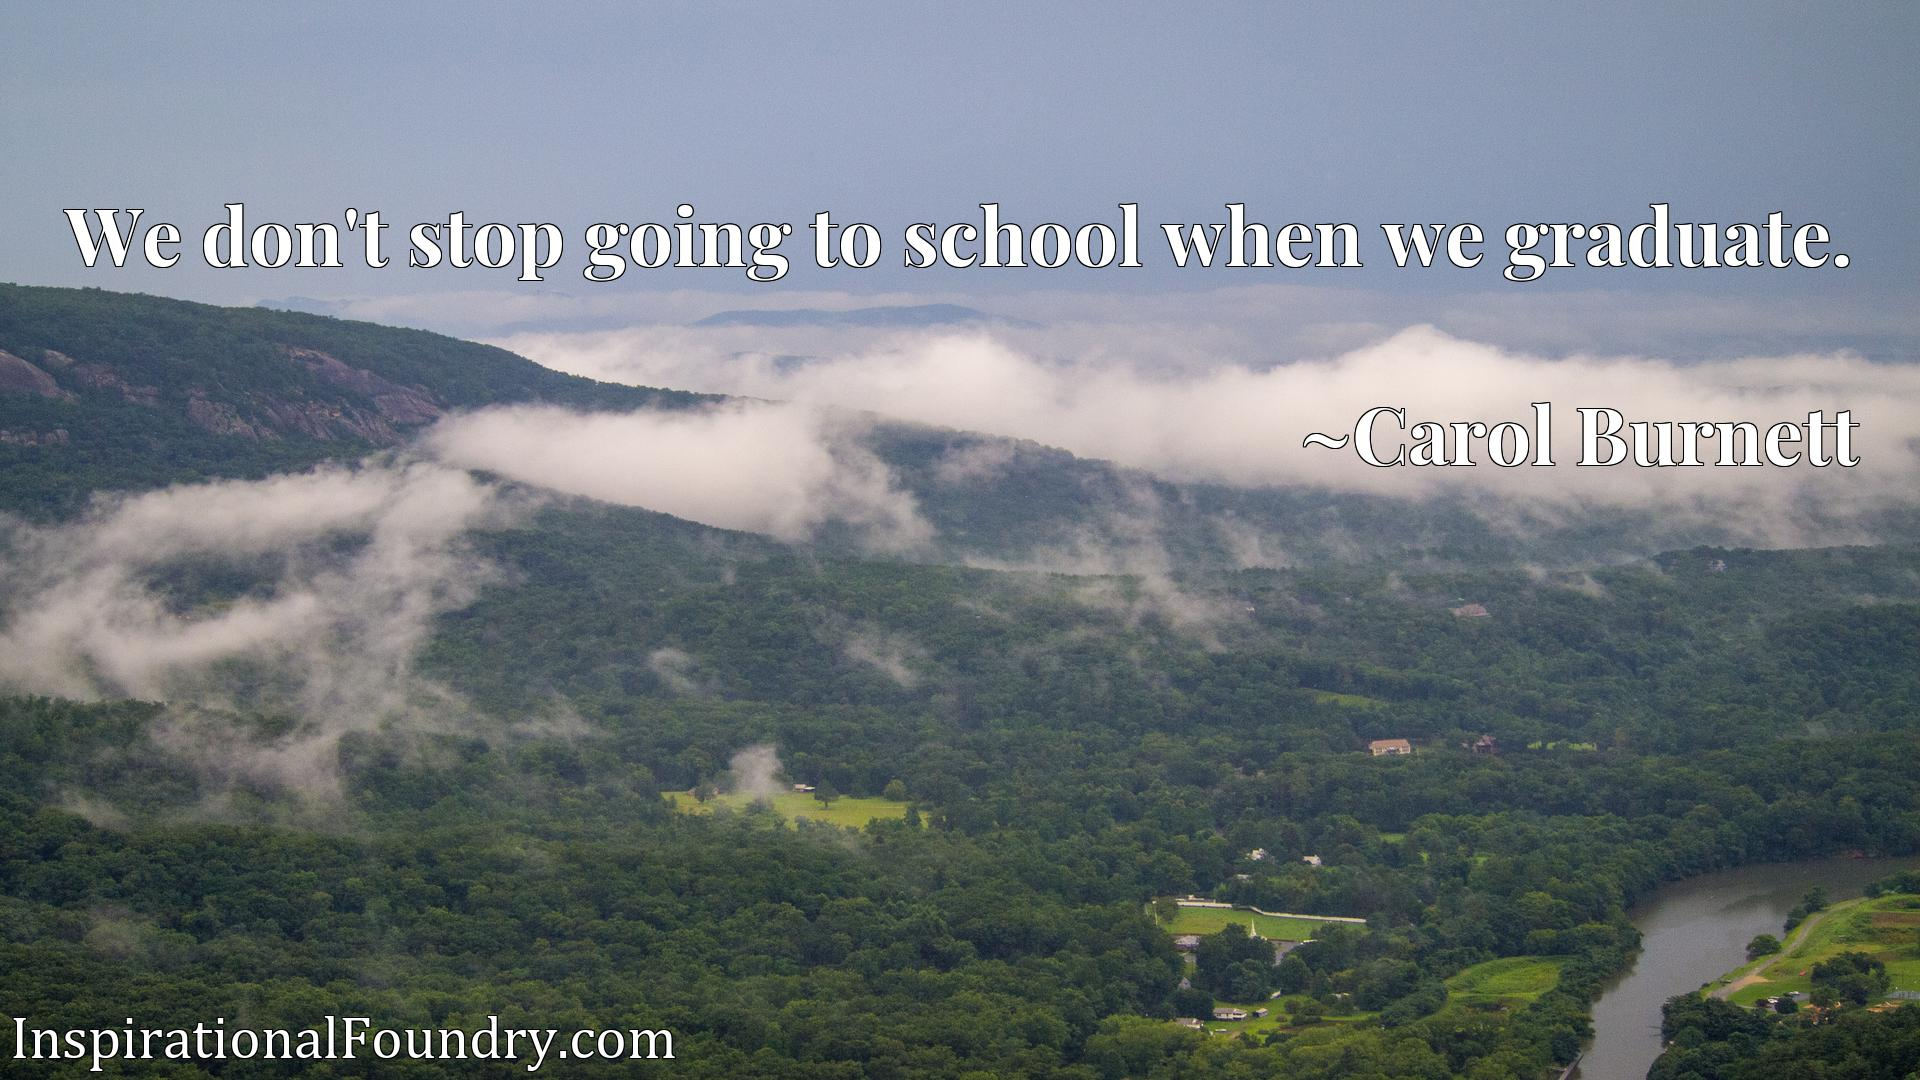 We don't stop going to school when we graduate.